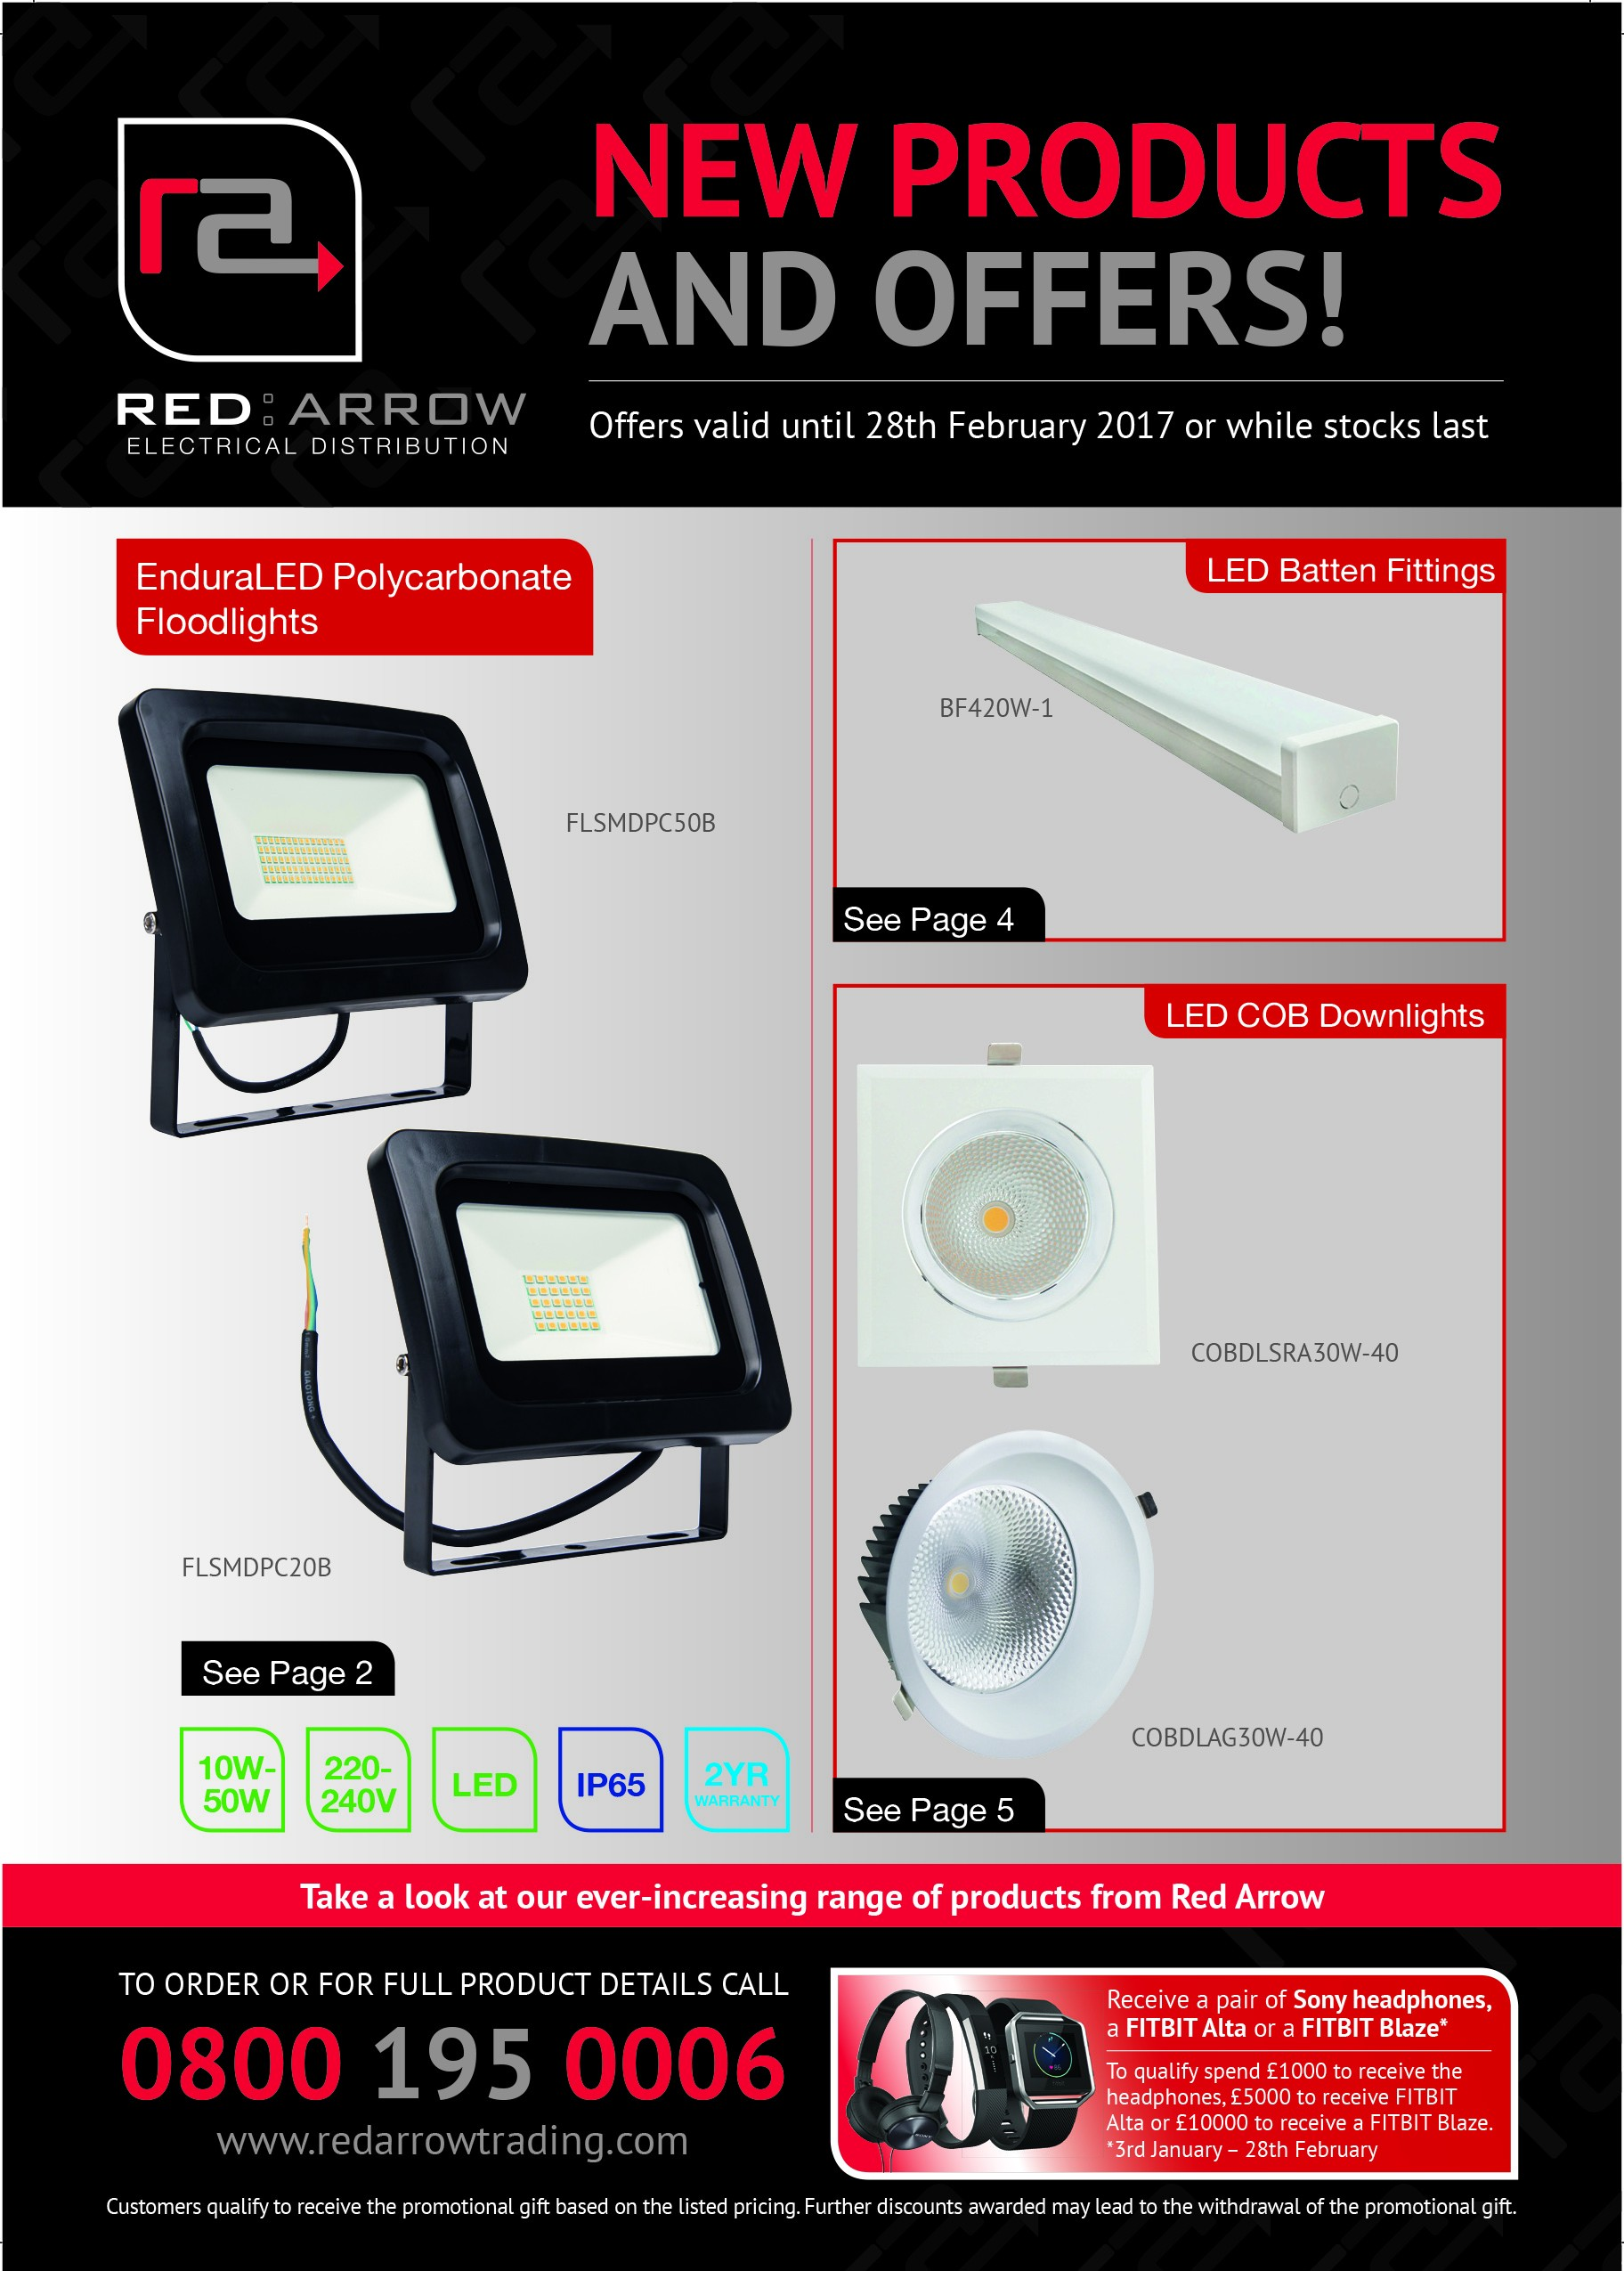 NEW PRODUCTS AND OFFERS MAILER - JANUARY & FEBRUARY